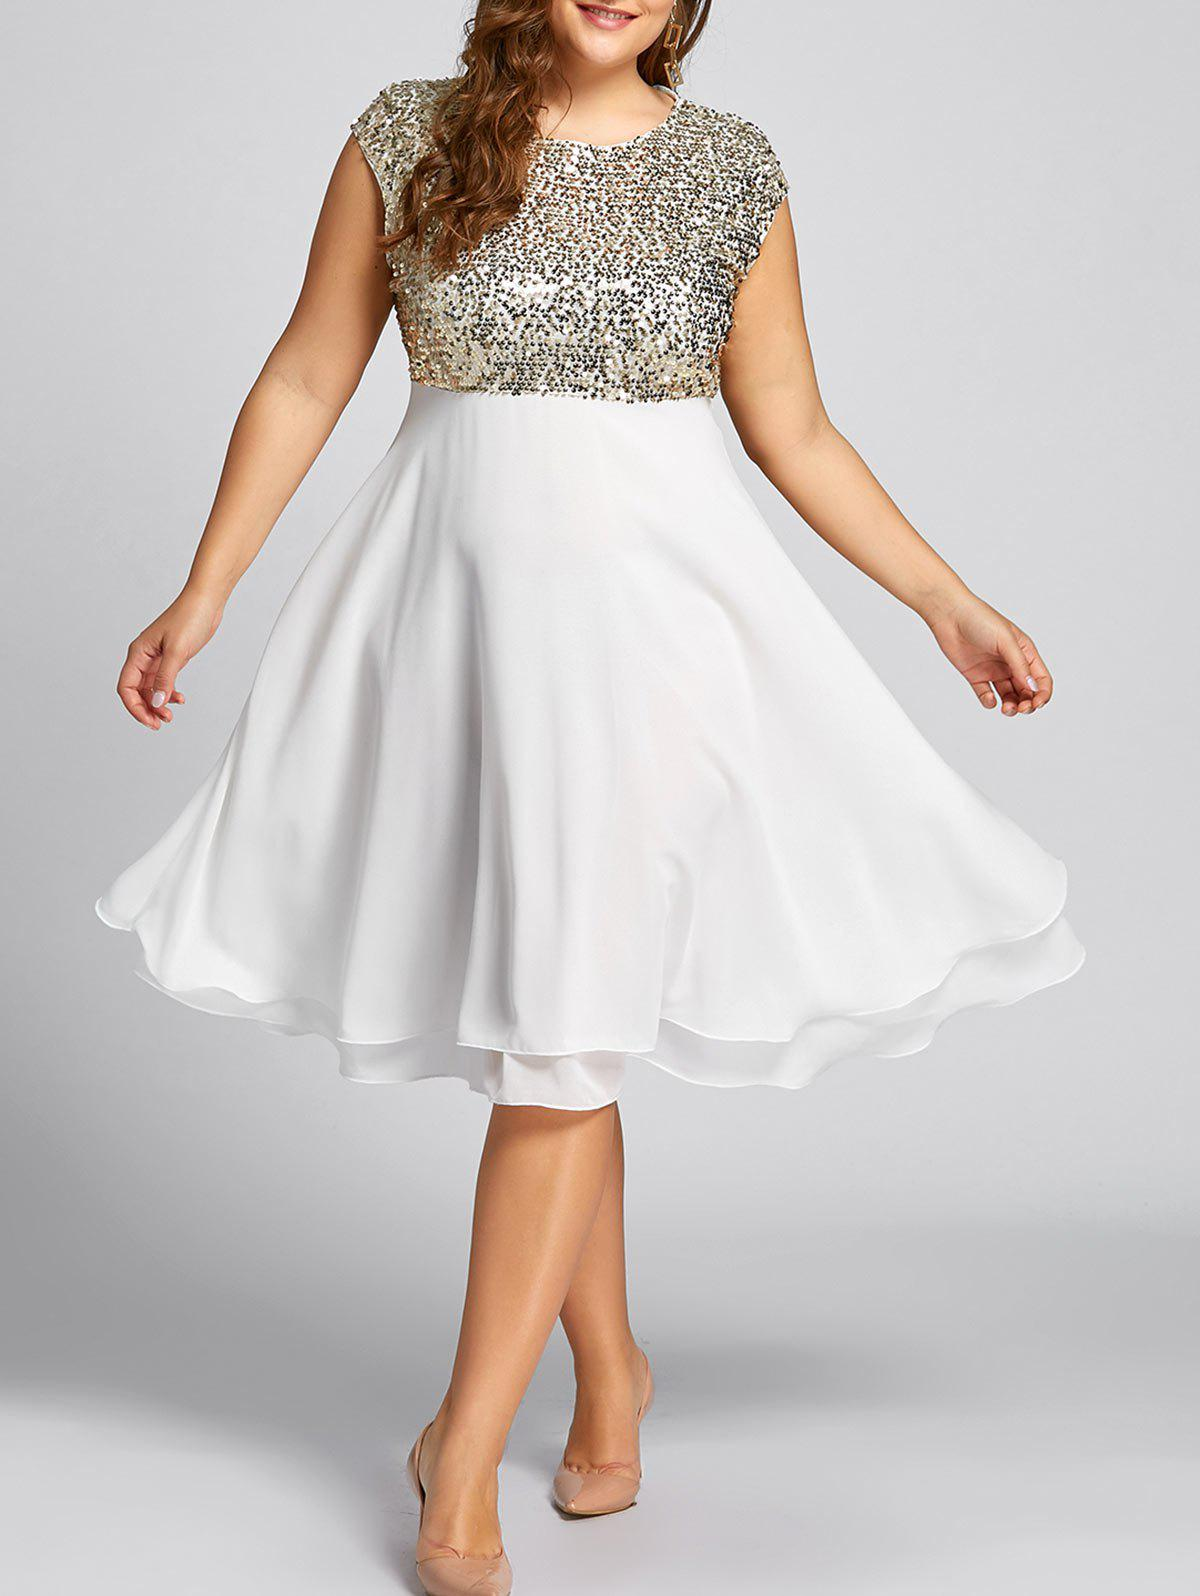 Plus Size Sequin Sparkly Cocktail Dress new arrived sophisticated sequin sexy curve fitting cocktail dress white